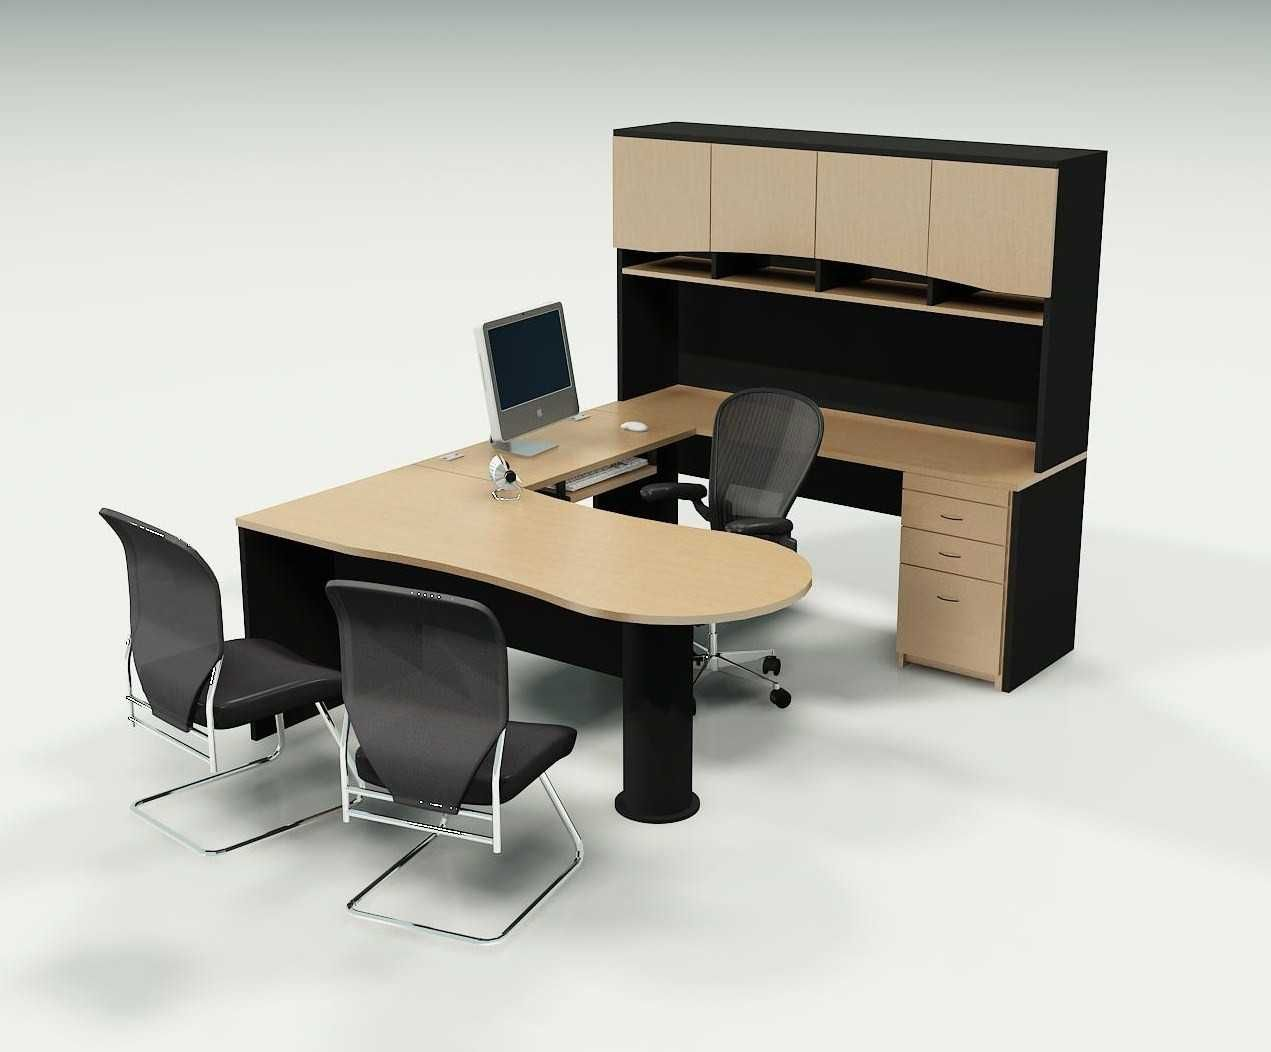 Wonderful U Shaped Beige and Black Wood Office Table Desks Furniture Design Ideas for Home with Flat Top Surface that have Countertop Decorating also Great Side Space Desk Cabinet also Elegant Black Chair Furniture